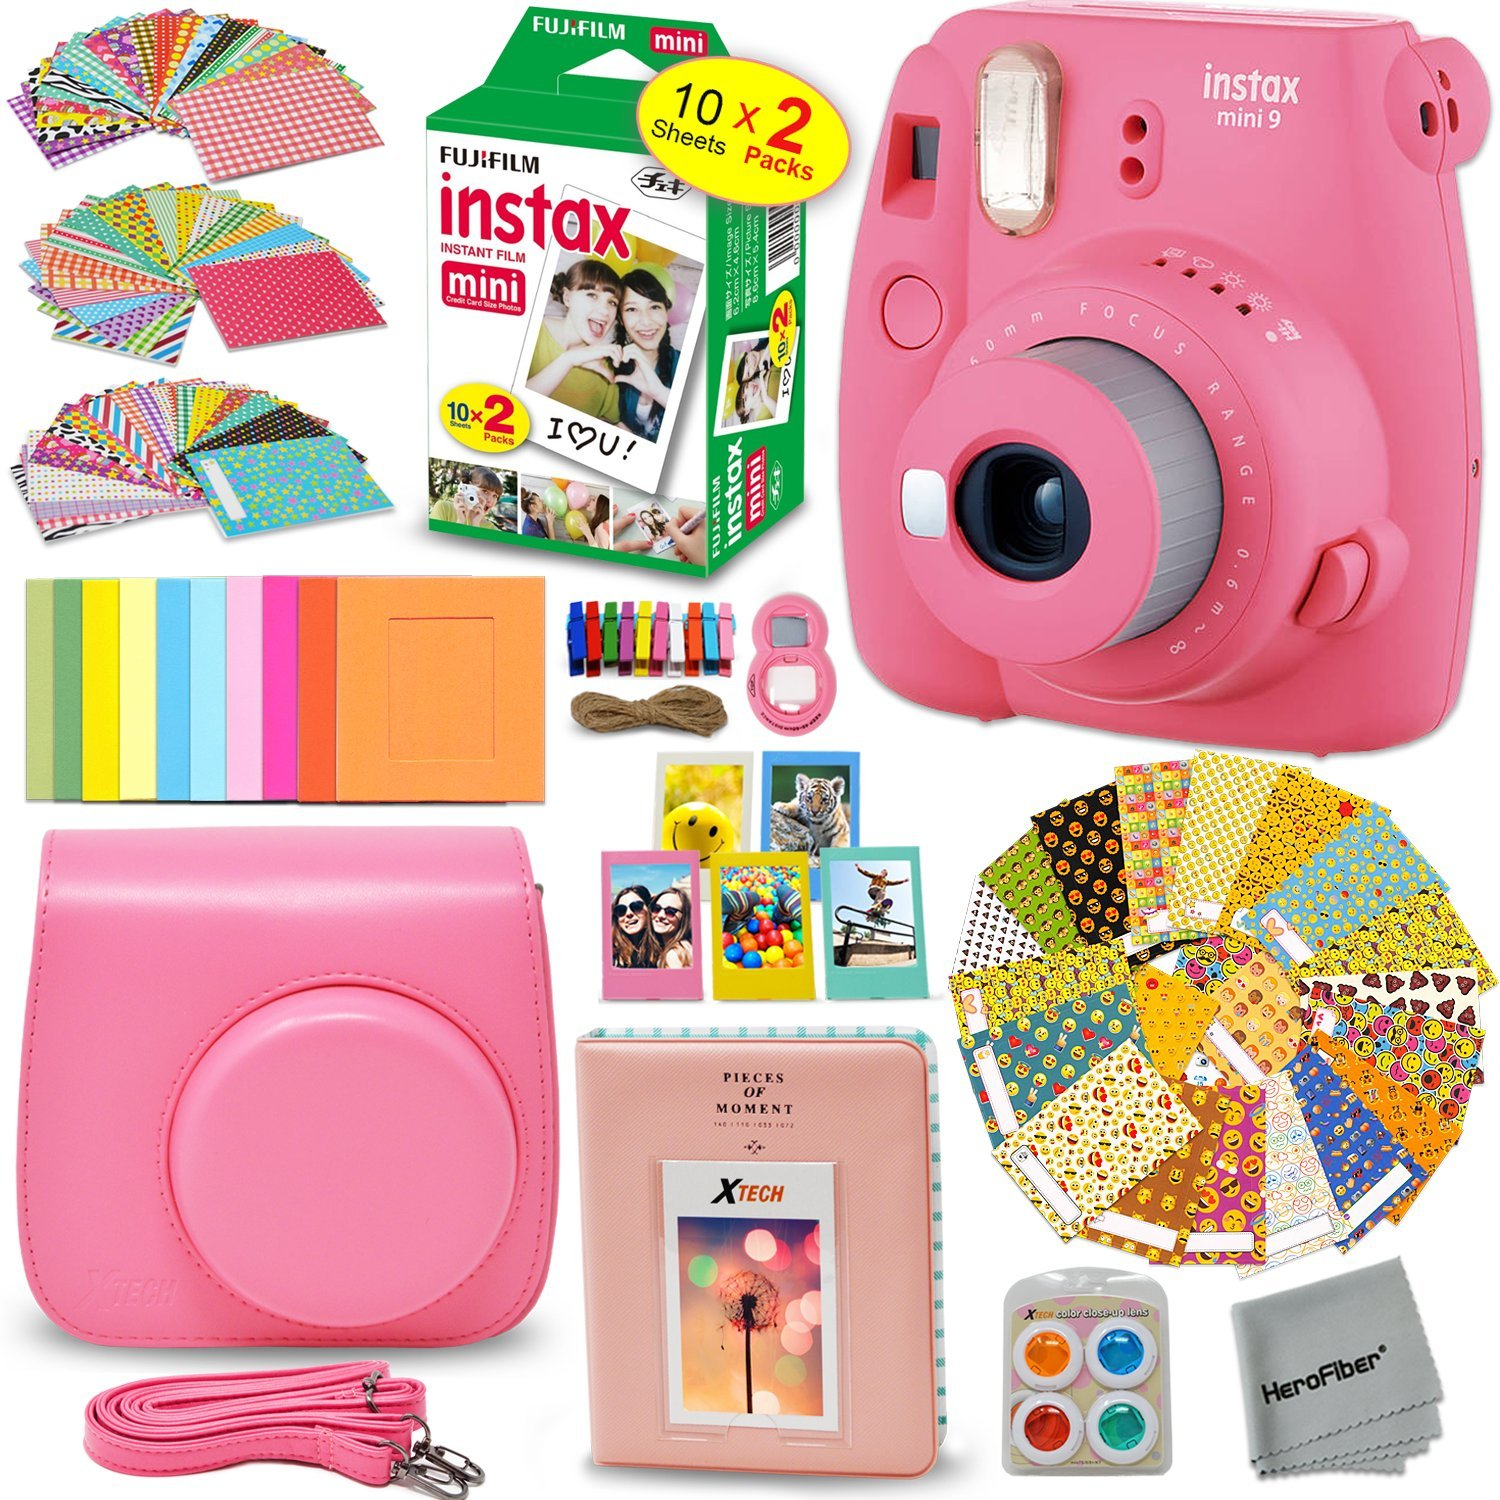 FujiFilm Instax Mini 9 Instant Camera FLAMINGO PINK + Fuji INSTAX Film (20 Sheets) + Custom Camera Case + Instax Album + 60 Colorful Stickers + 20 EMOJI stickers + Fun Frames + Colored Filters + MORE by HeroFiber